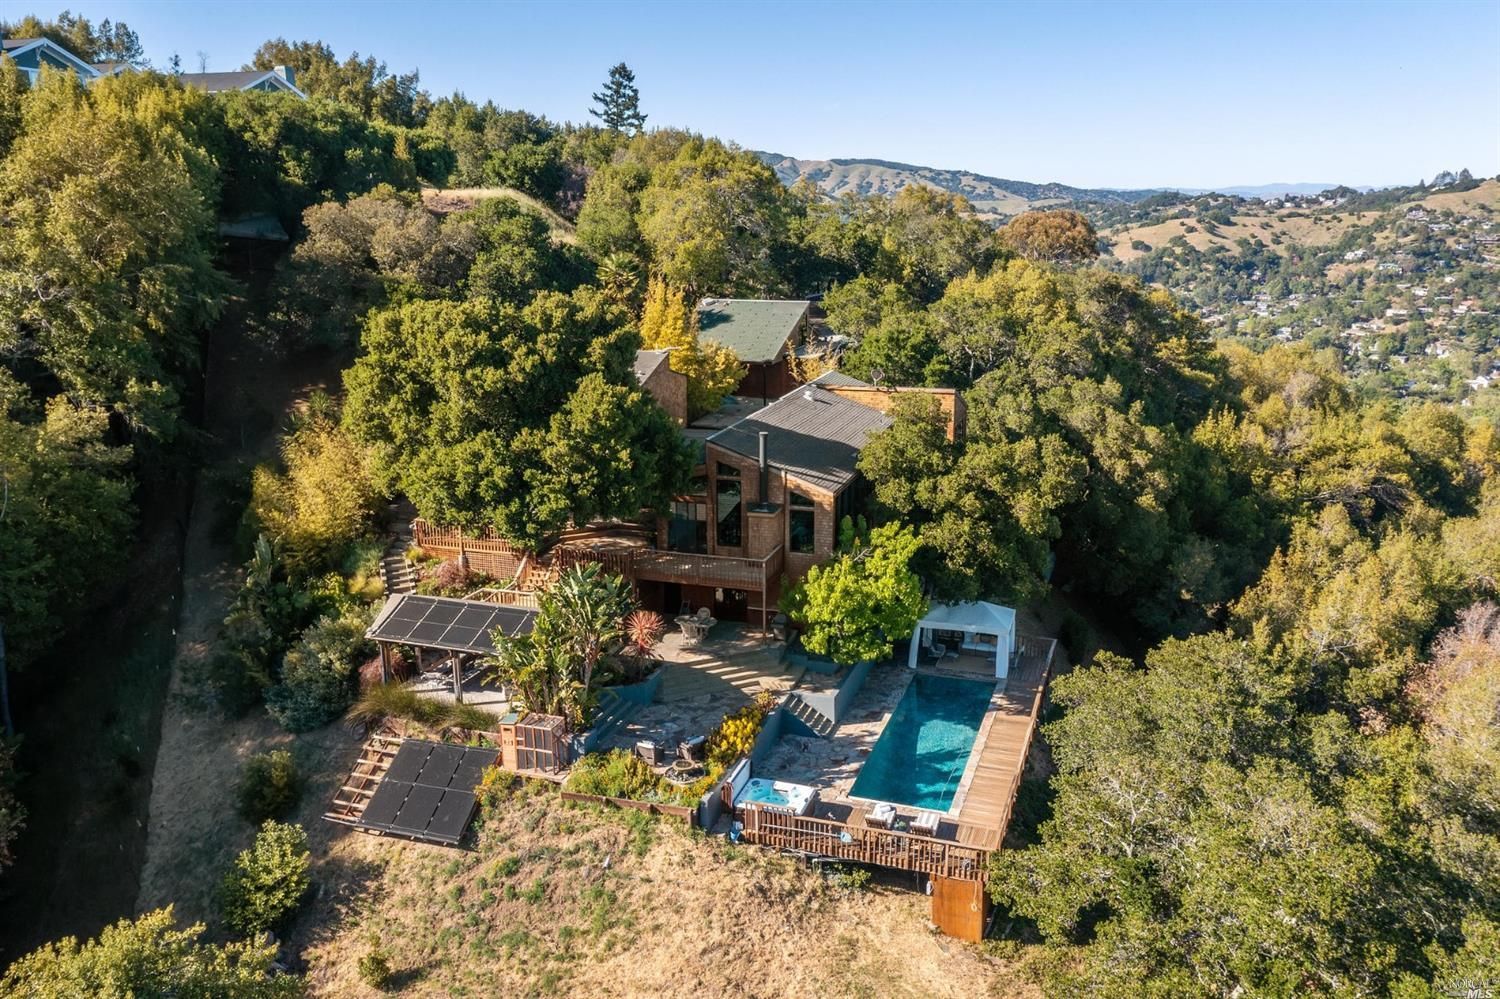 Rarely available, spectacular gated estate on almost an acre in San Anselmo. Featuring a sparkling pool & spa w/ panoramic views to the SF Bay & beyond. This amazing home features a private en-suite primary bedroom + spa like bath on the upper level. Main level: 2 bedrooms, formal dining room & living room complete w/ fireplace, high ceilings & breathtaking views. Thoughtfully designed chef's kitchen w/ Sub Zero fridge, opens to a family room w/fireplace + casual dining w/ treetop views. Lower level: 2 bedrooms + 2nd living room & full kitchen opening to the grounds & pool area. Enjoy entertaining w/ multiple deck & patio spaces: pergola overlooking the pool & views for al fresco dining. It's a magical, lushly landscaped setting. 2 garage, studio w/ half bath above, a fantastic home office. Easy access to world class hiking/biking trails. Highly regarded schools. Just a couple minutes to downtown SA, yet blissfully away from it all. This is the good life. Come home to San Anselmo.